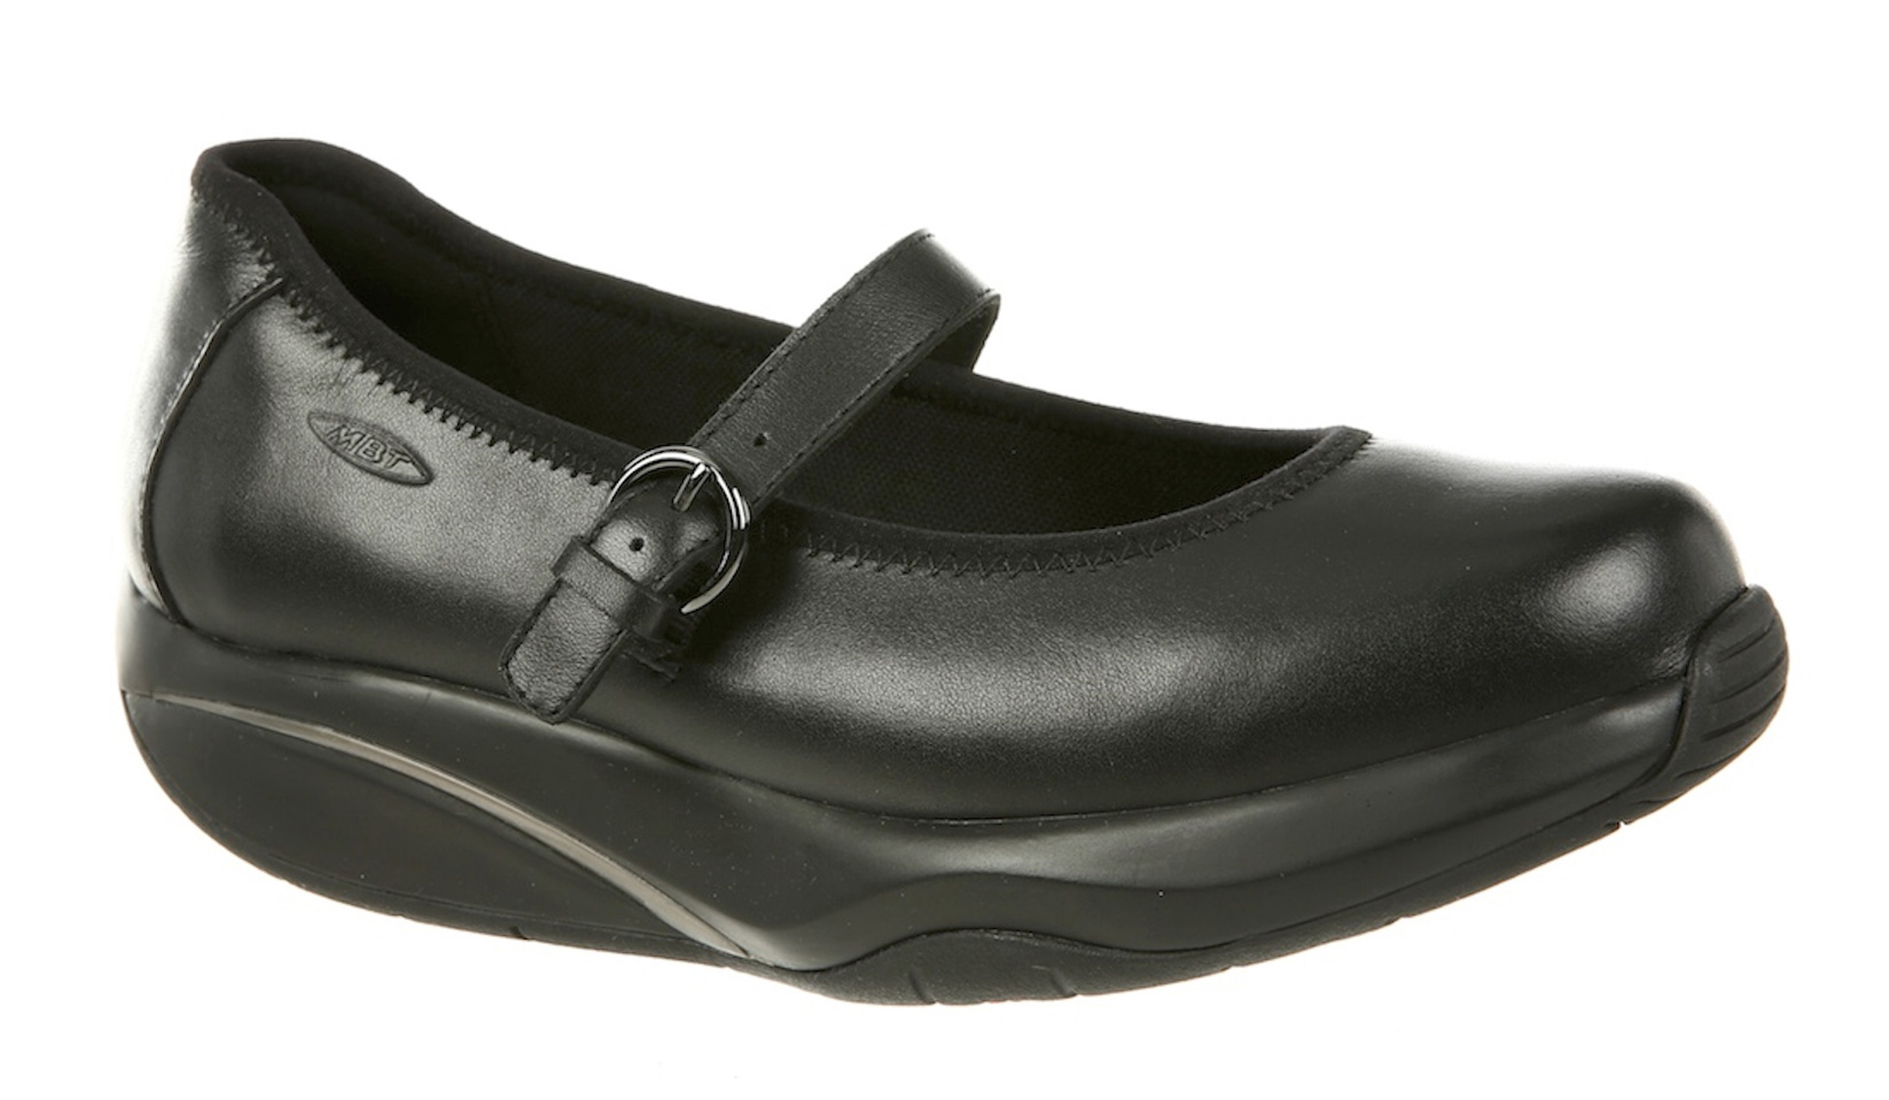 Mbt - MBT Shoes Women s Tunisha Mary Jane Casual Shoe  8 Medium (B)  Black Nappa Buckle - Walmart.com 43effddda